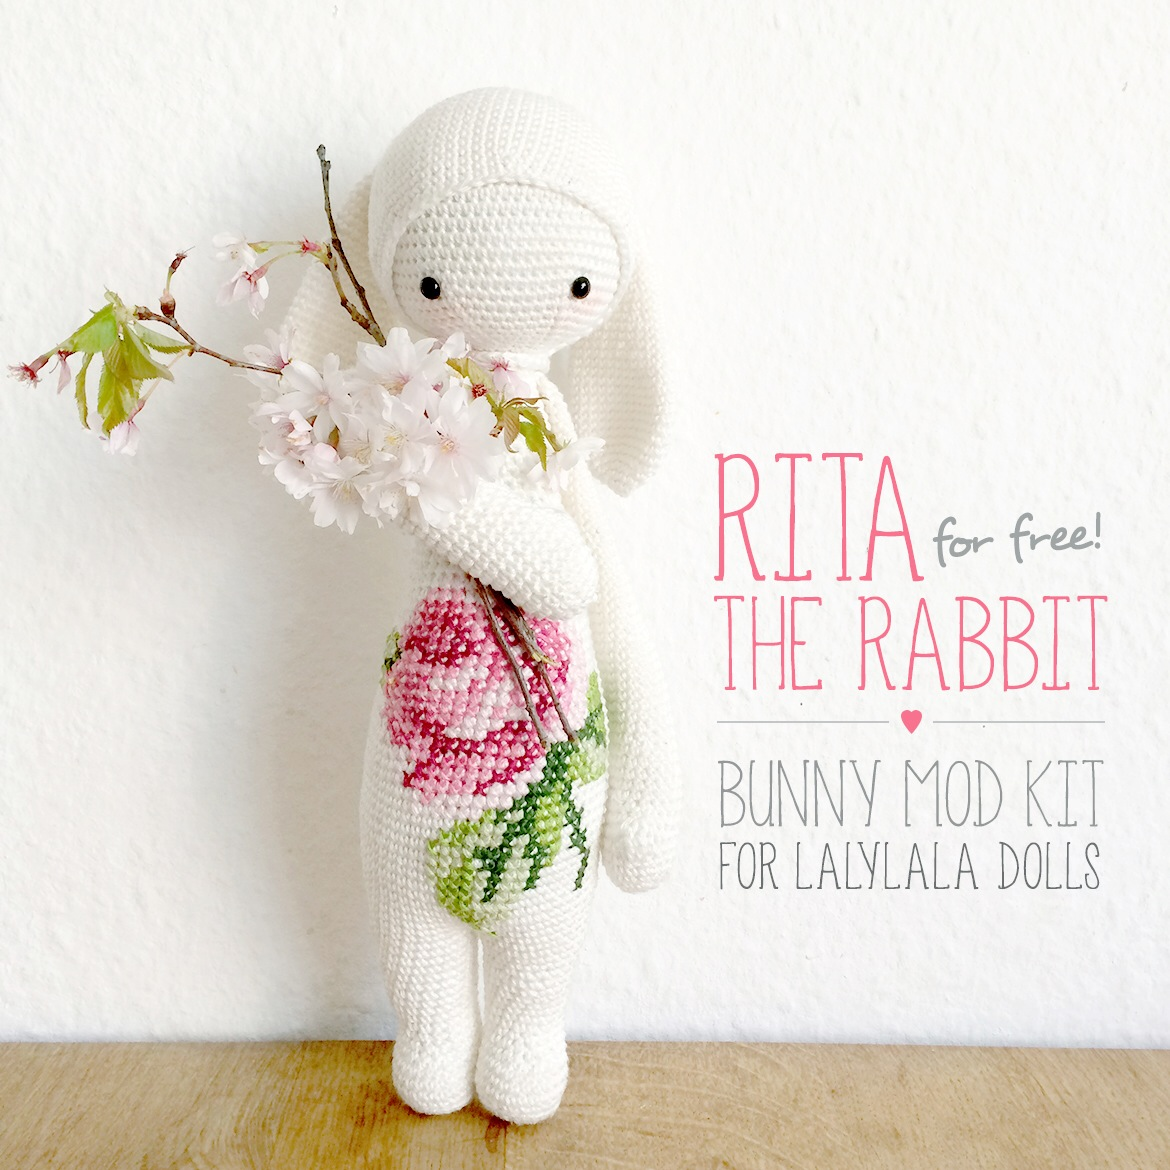 http://www.lalylala.com/?port=easter-mod-kit-rita-the-bunny-a-free-lalylala-crochet-pattern